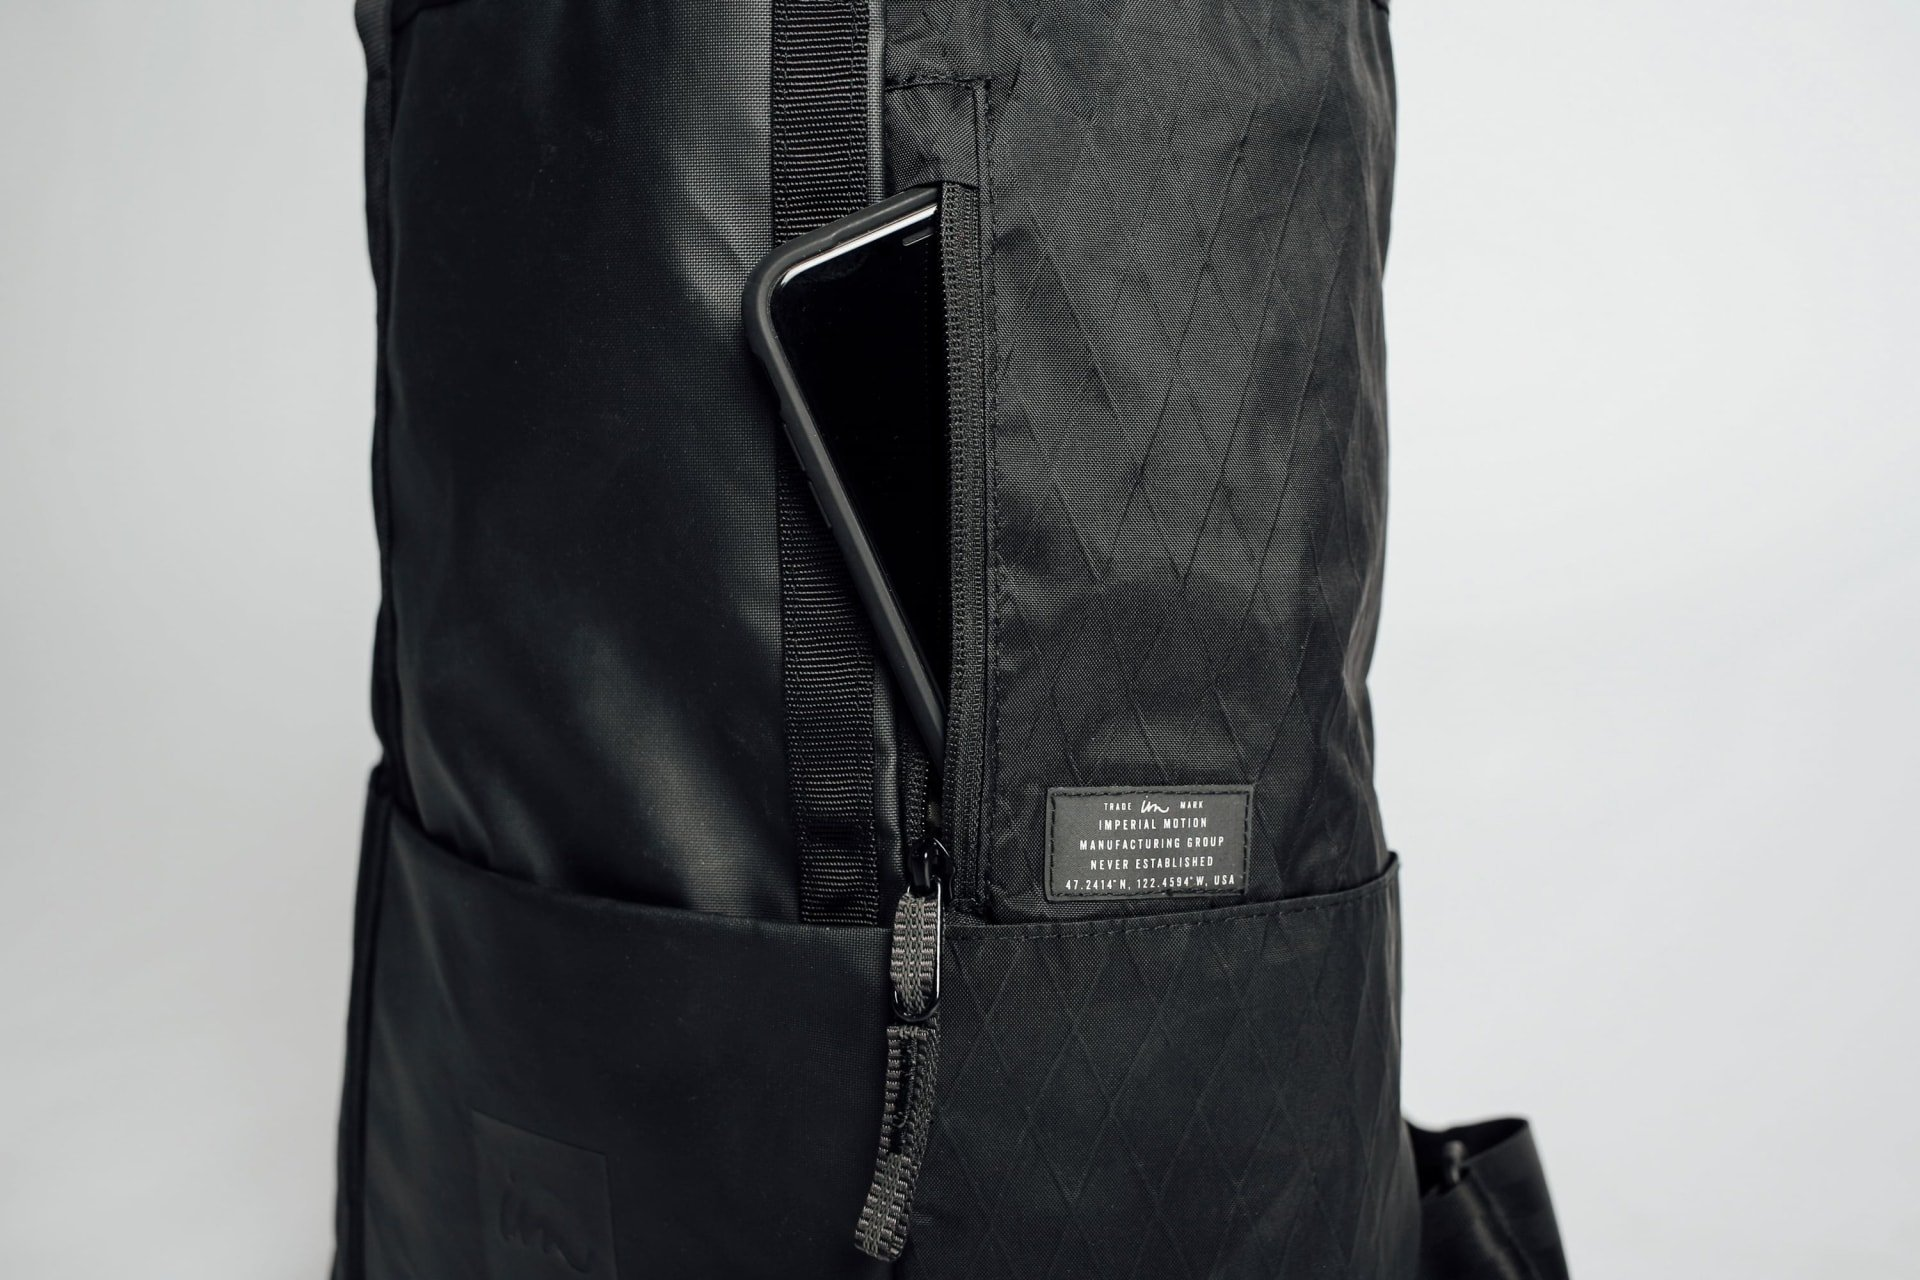 Exterior Quick Access Pocket